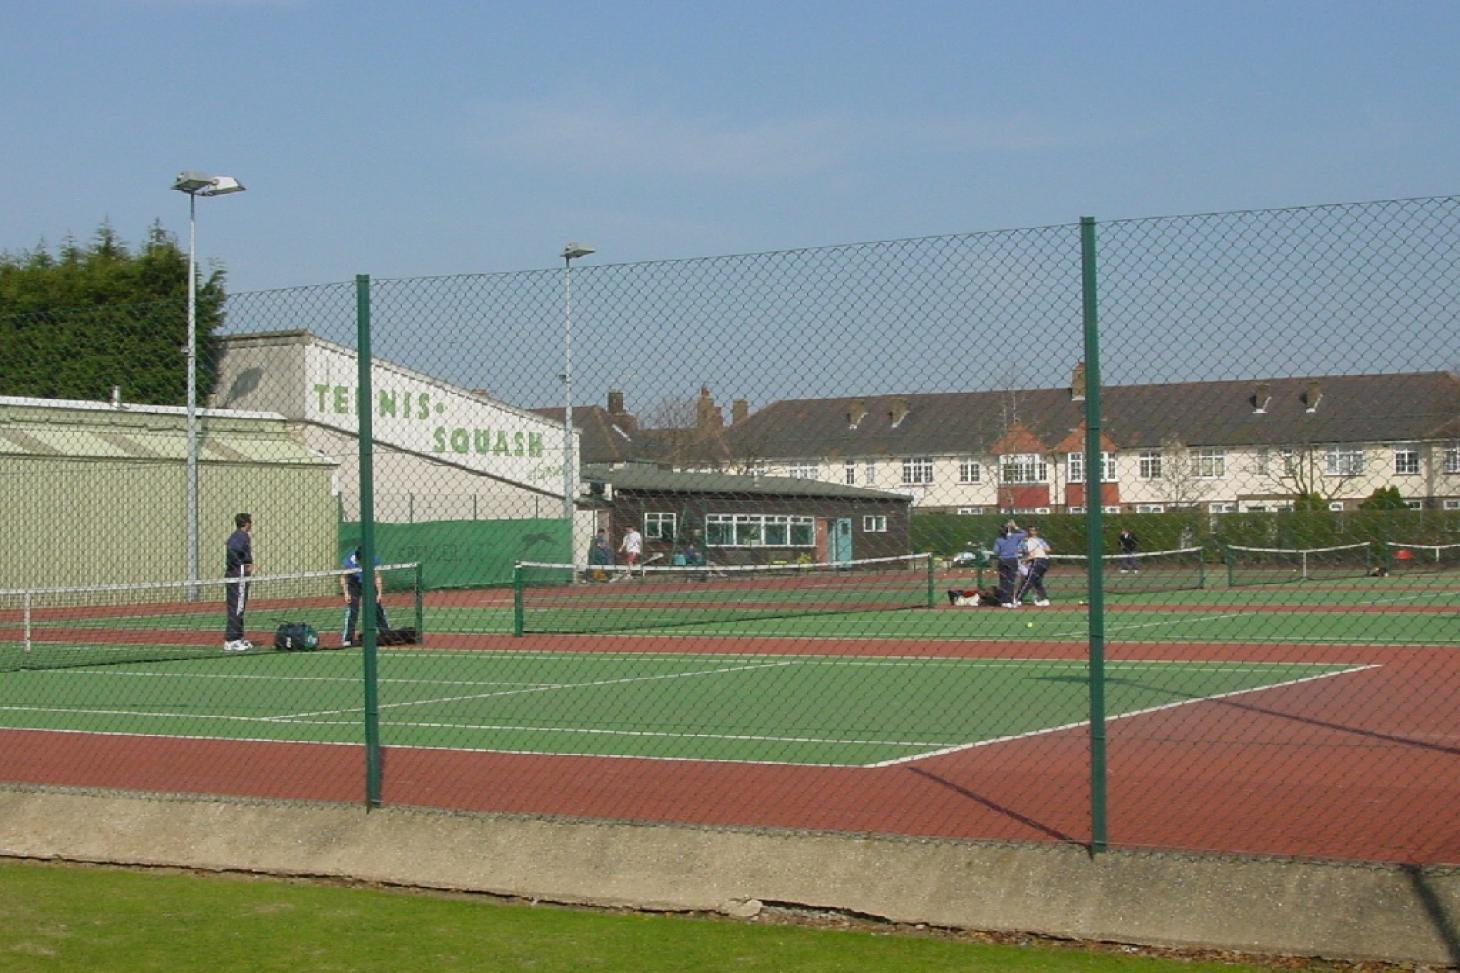 Spencer Club Outdoor | Grass tennis court